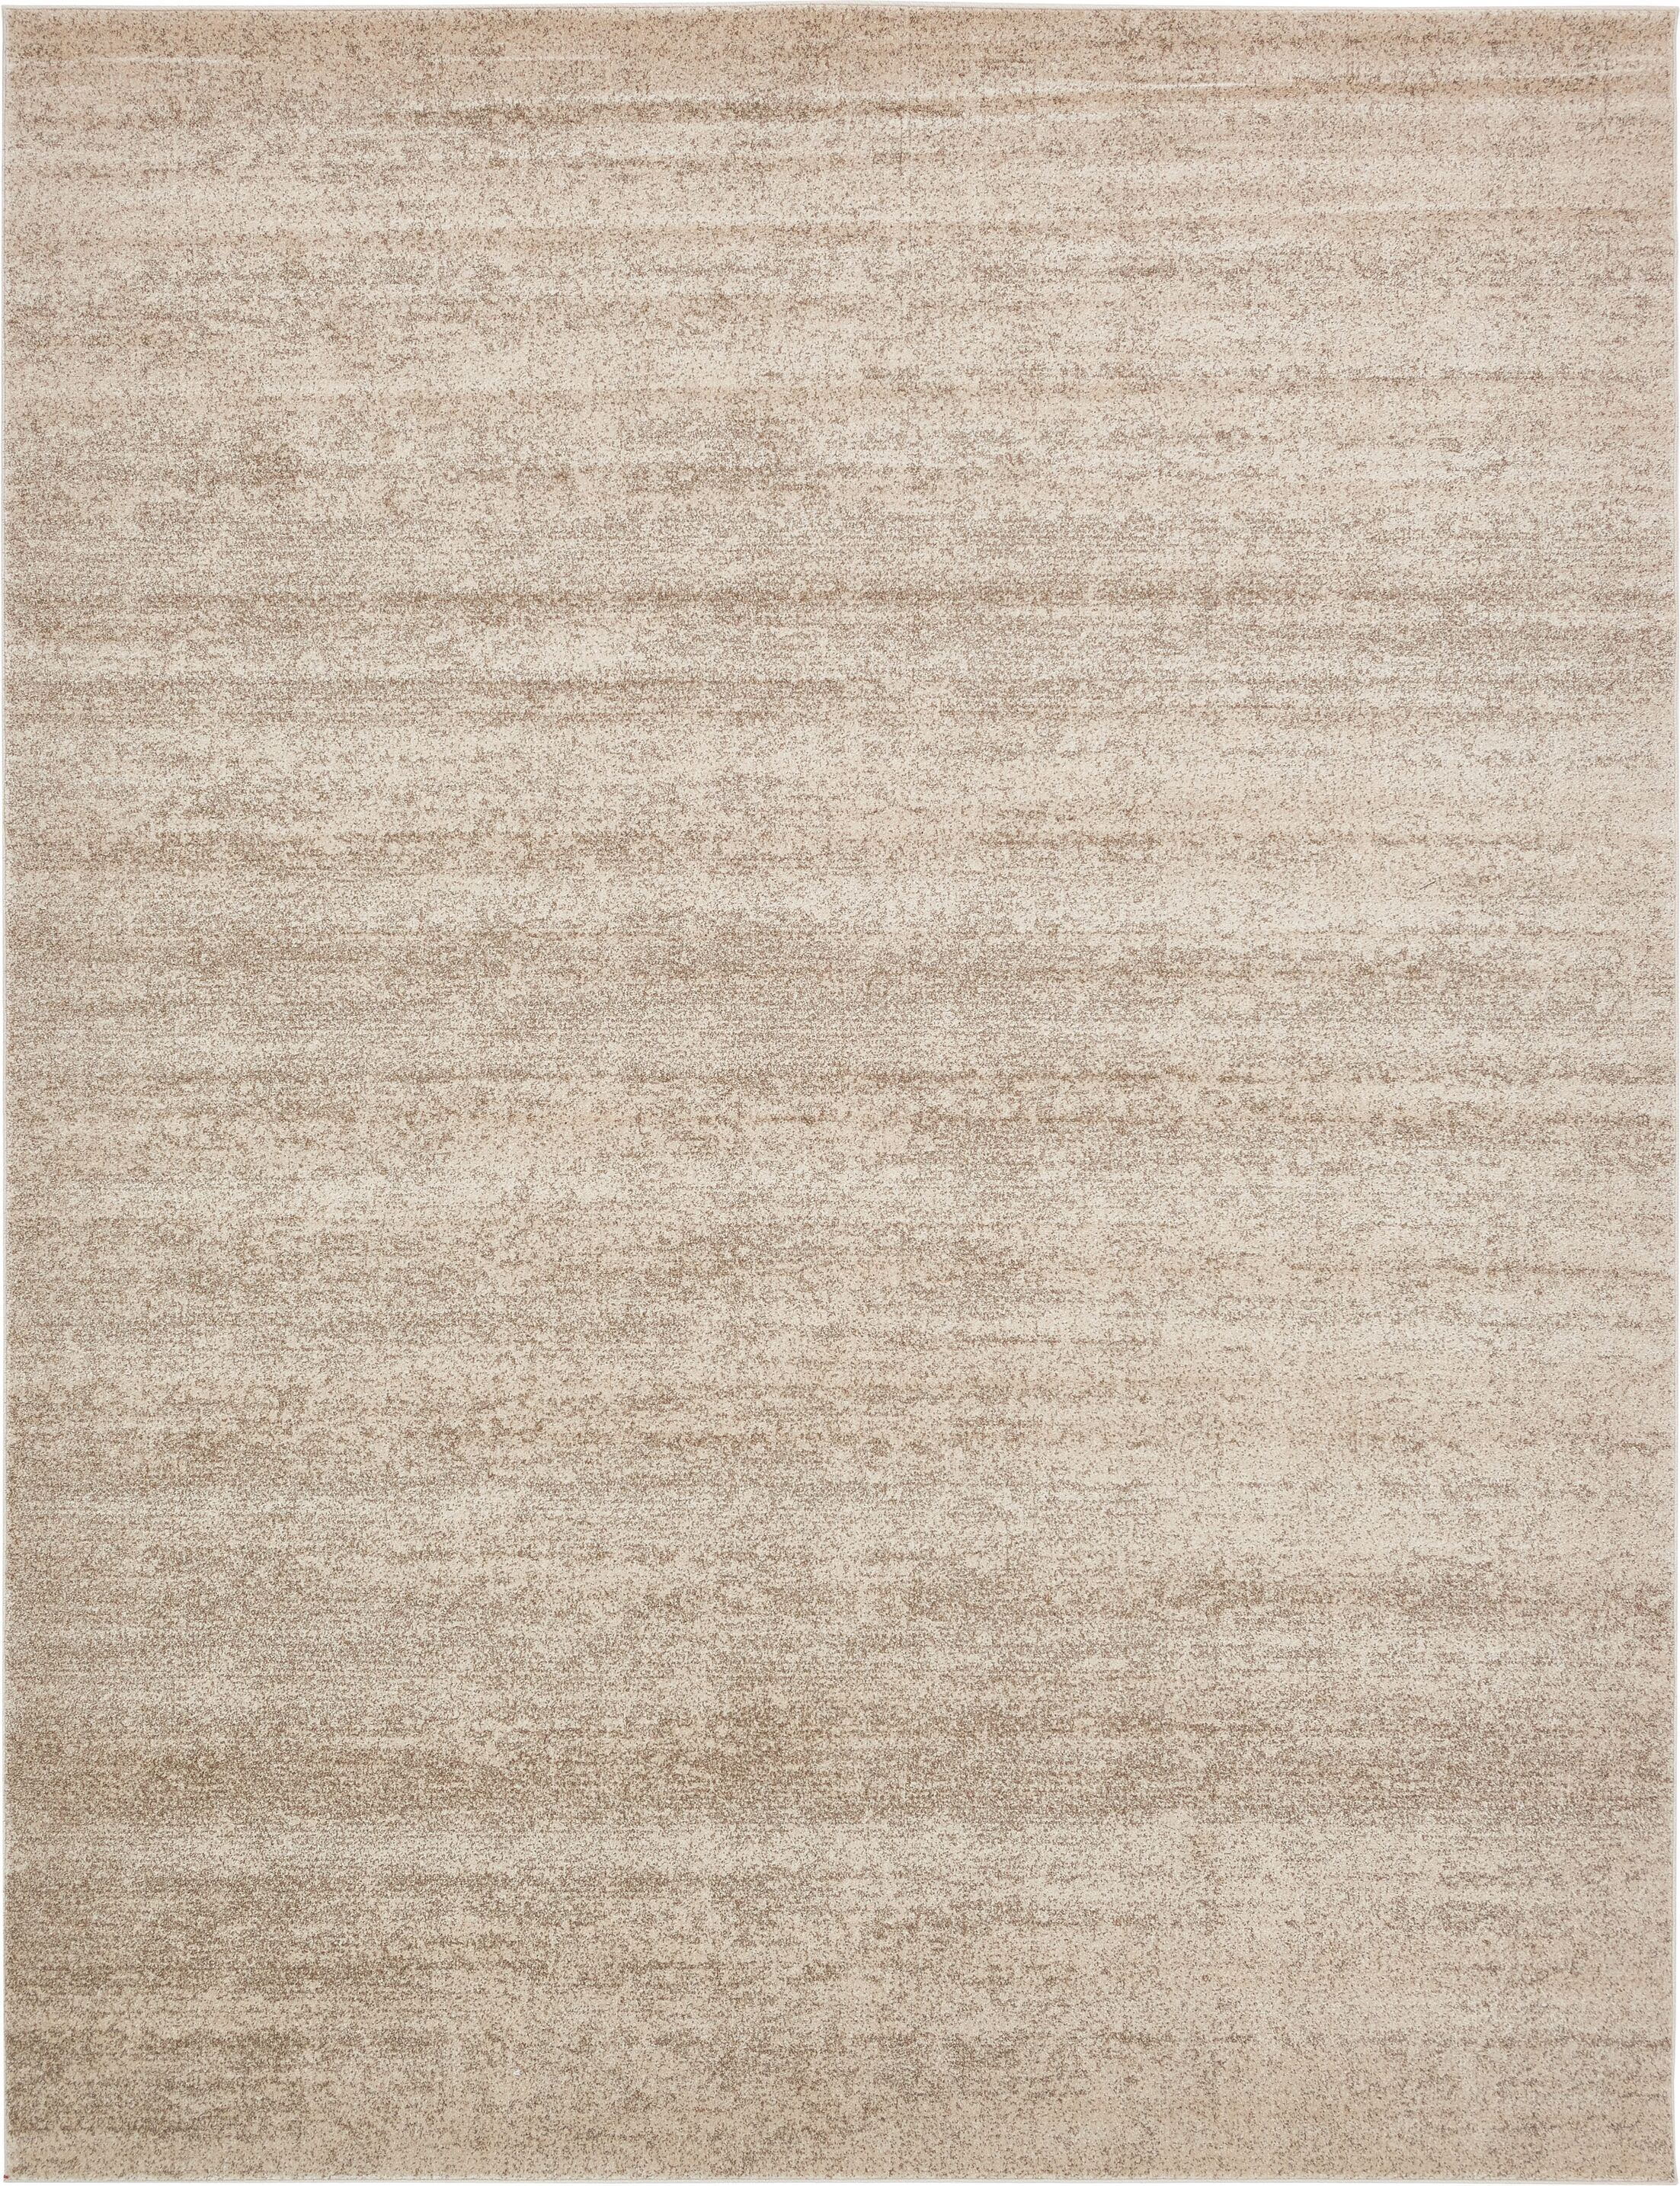 Elaina Brown/Beige Area Rug Rug Size: Rectangle 10' x 13'